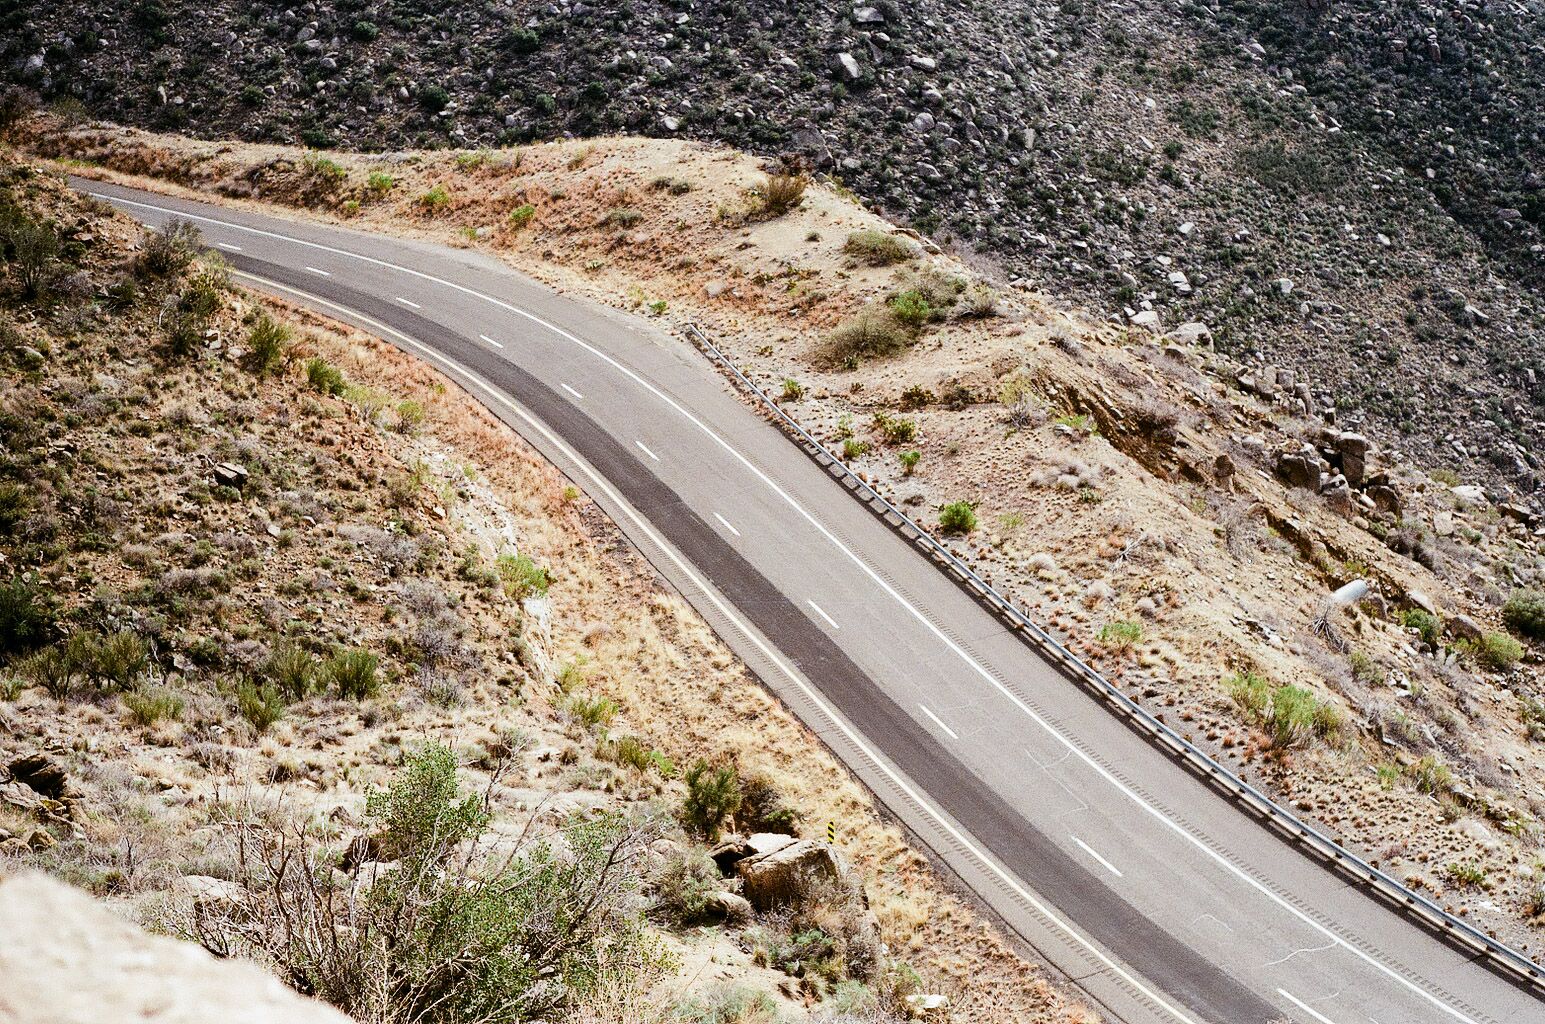 Romantic and rugged, the road looks especially alluring from an overlook in central Arizona.